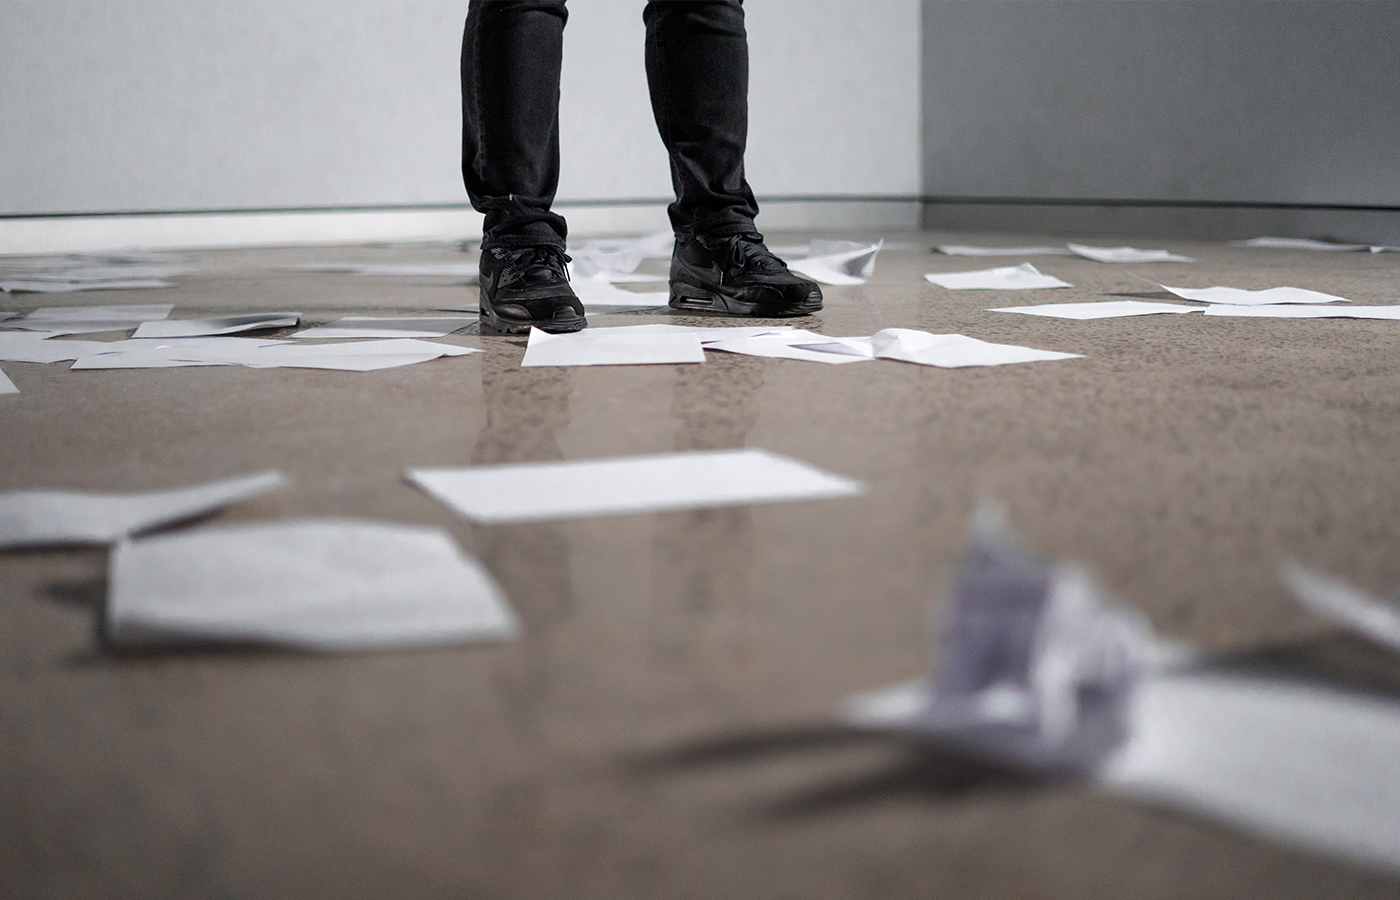 Failures, Missteps and Discovery: Why Leaders Should Embrace Mistakes